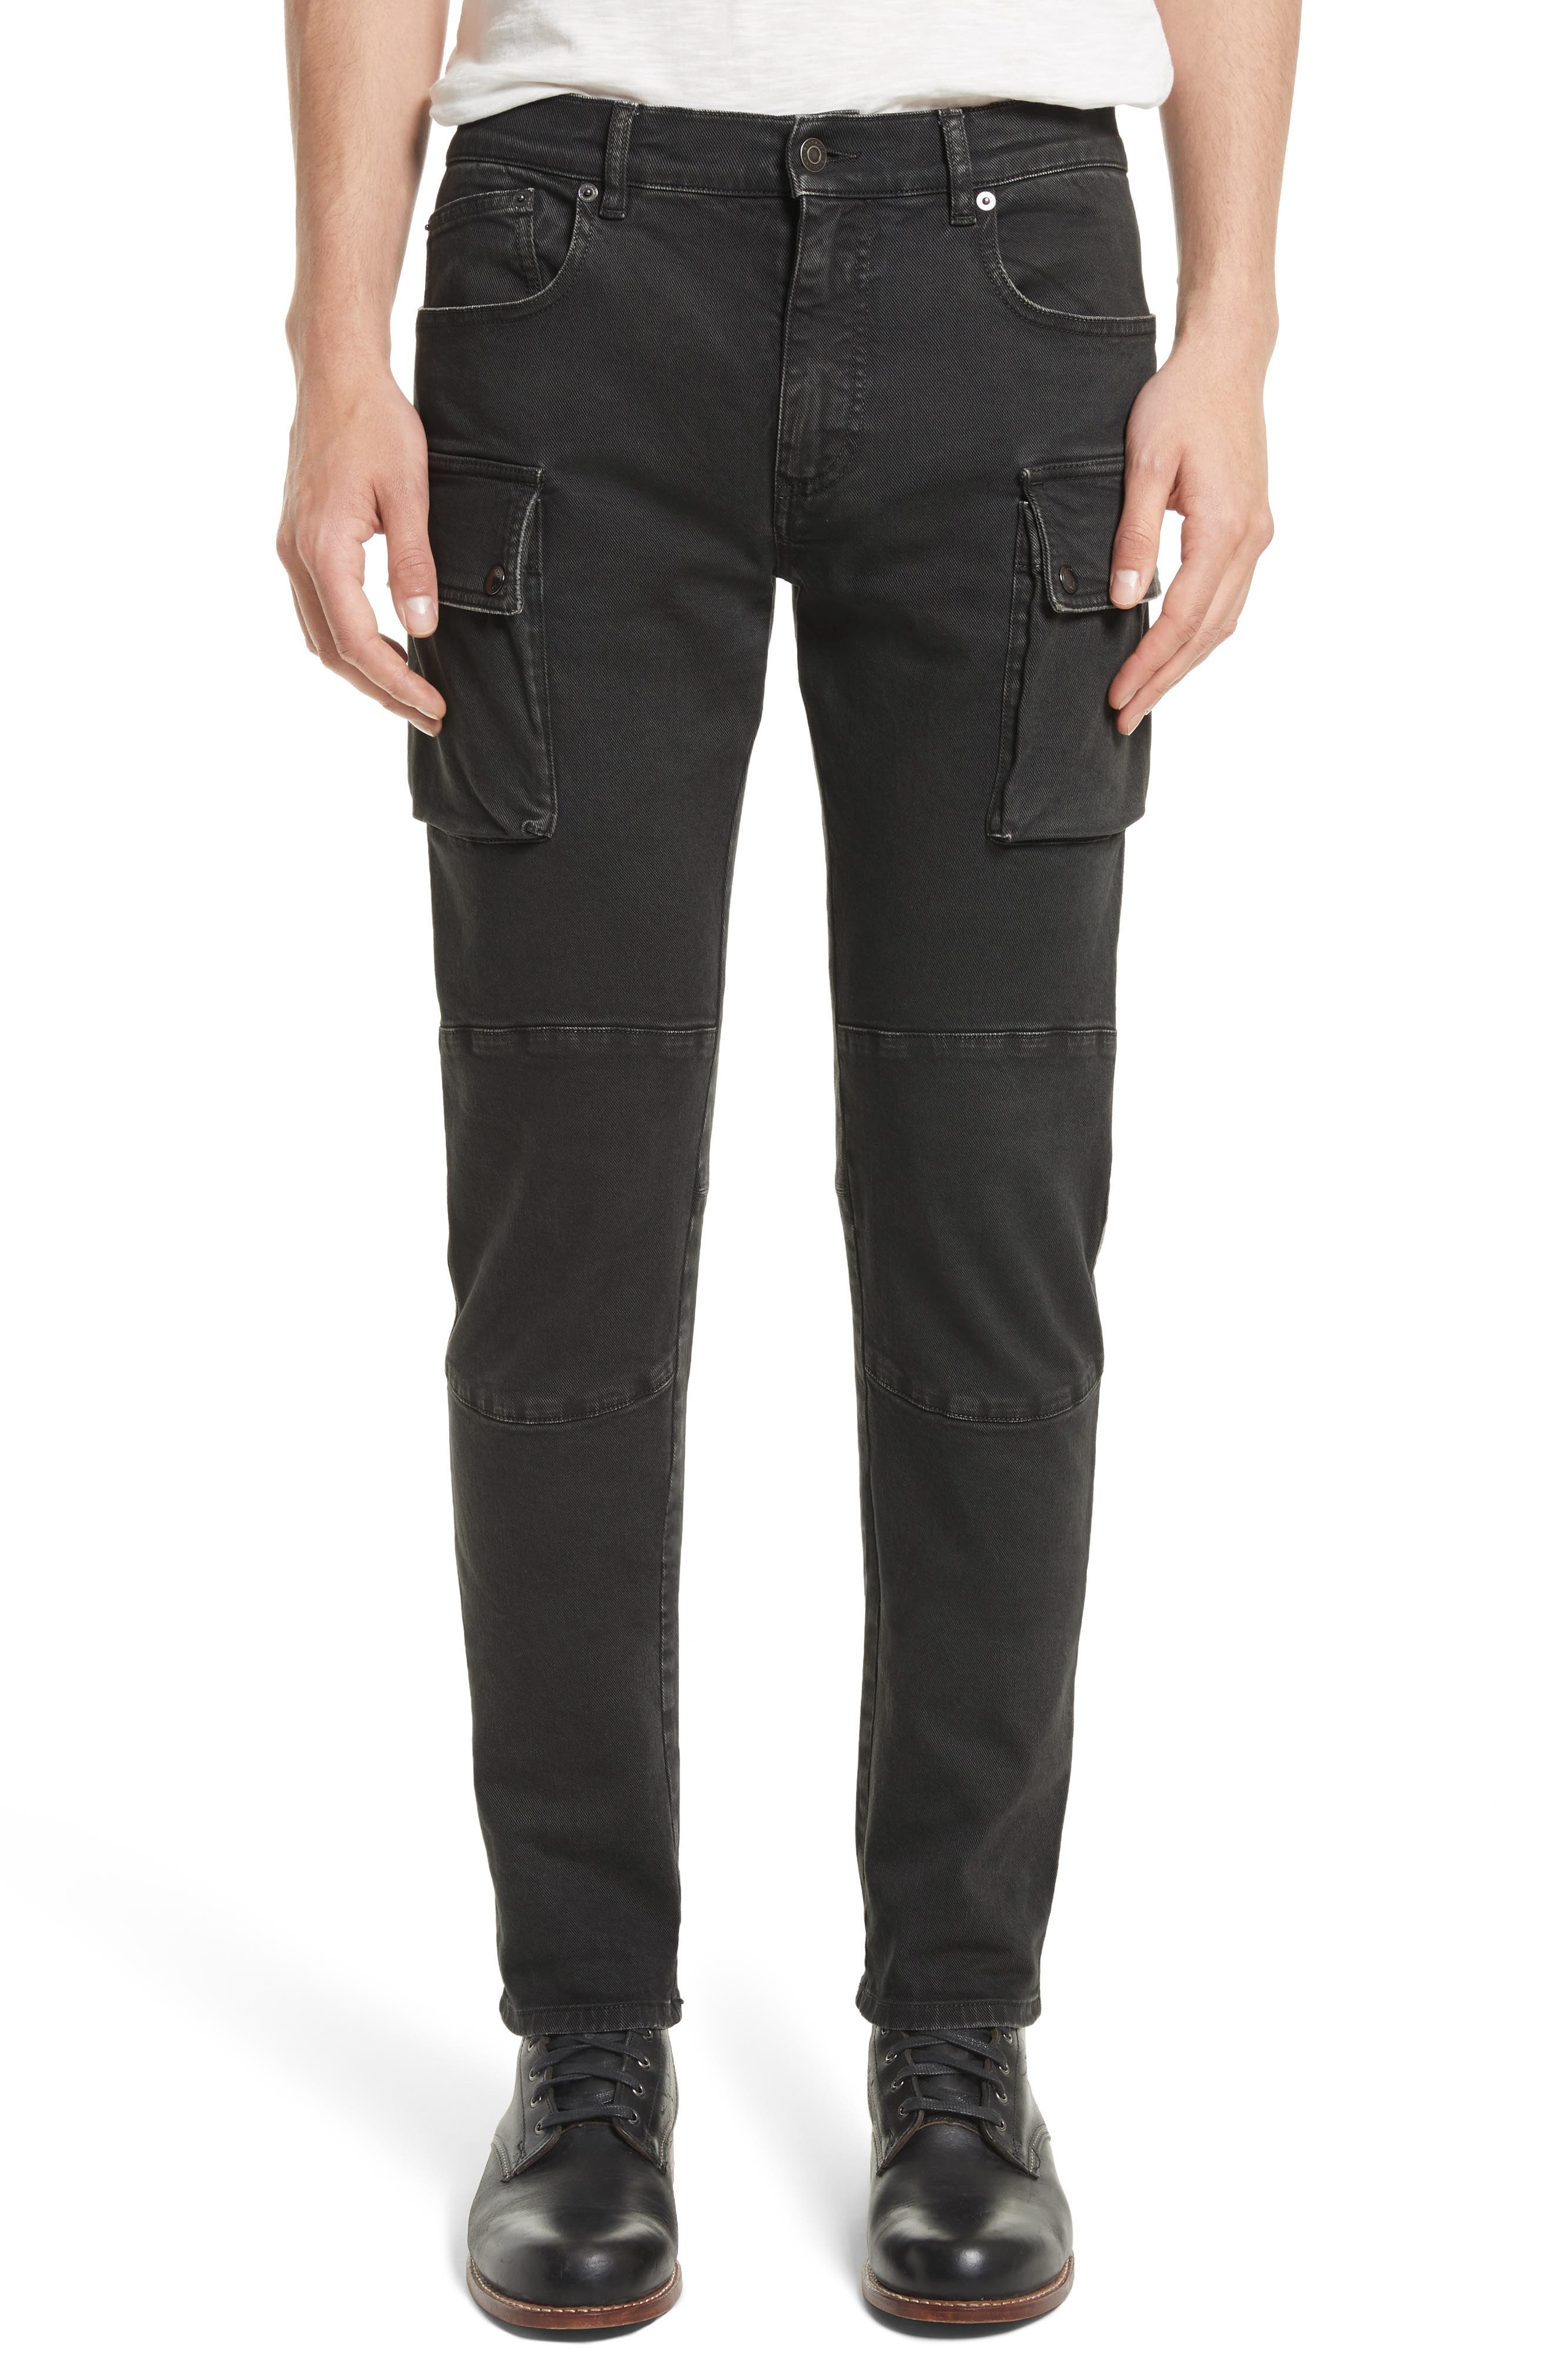 Westward Tapered Fit Cargo Jeans,                             Main thumbnail 1, color,                             001